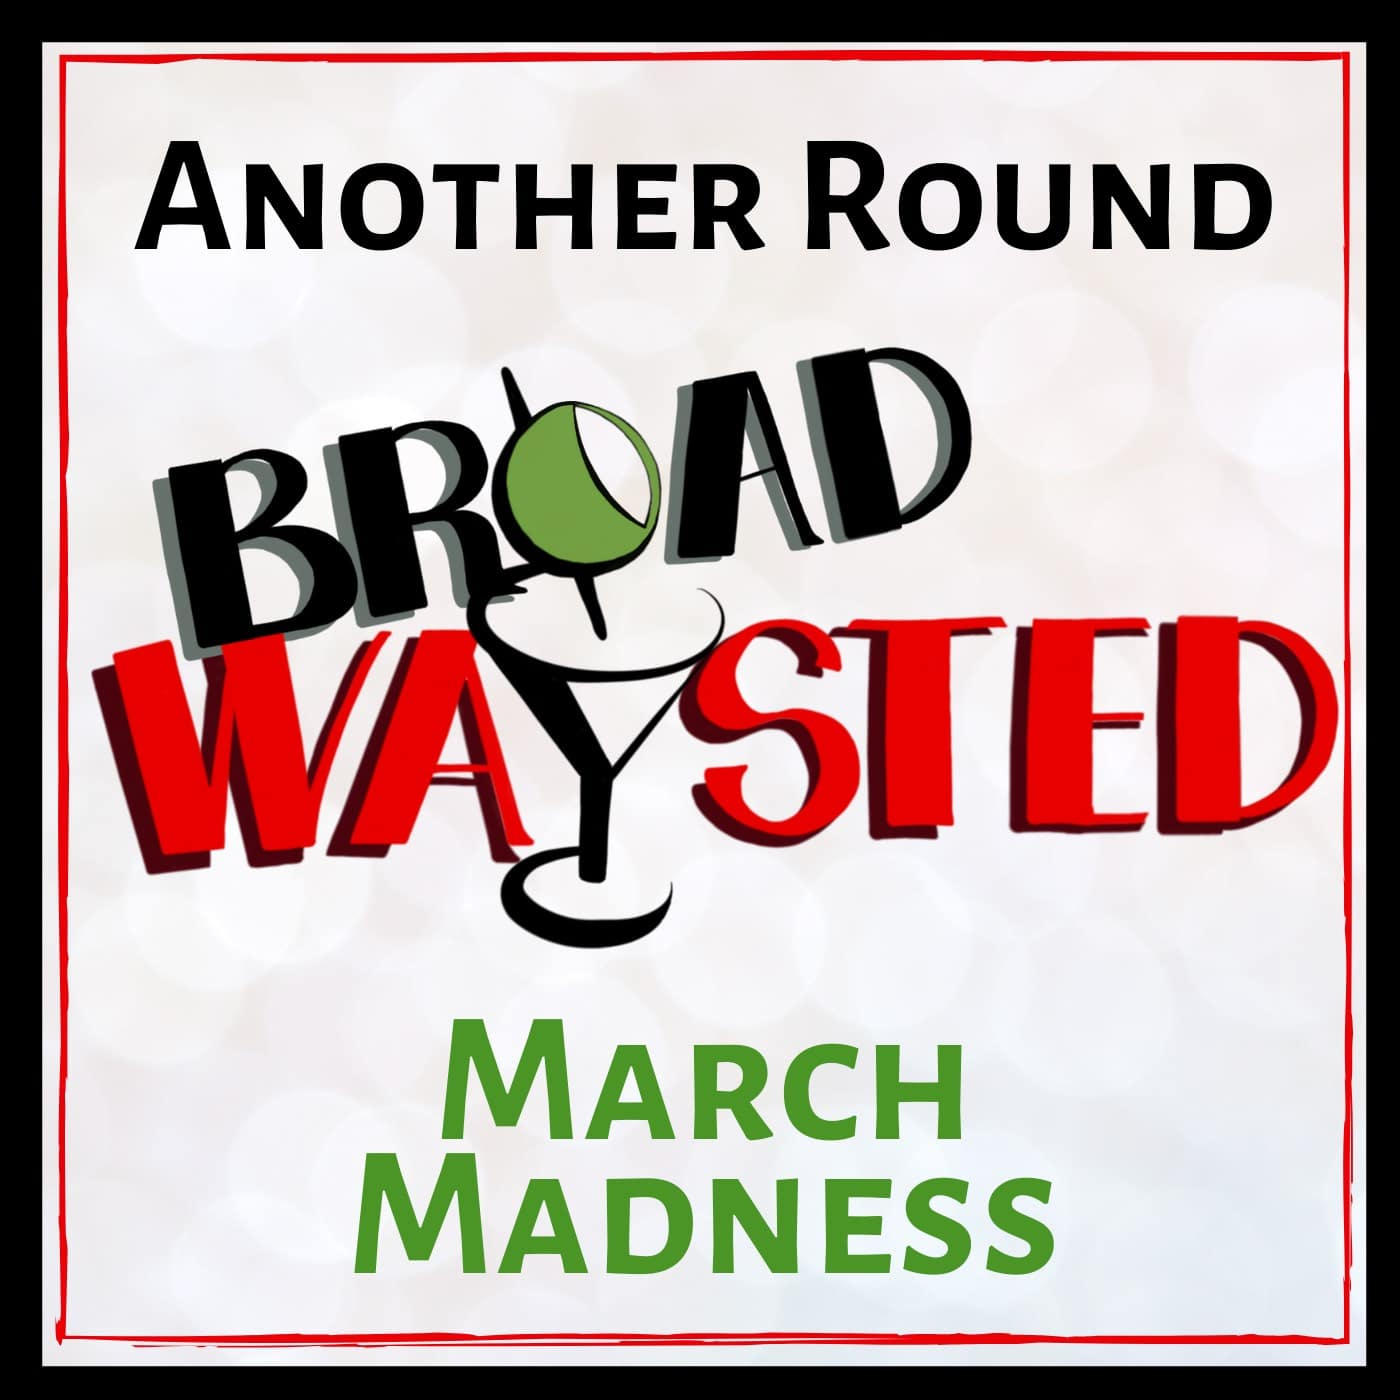 Broadwaysted Another Round March Madness 2020